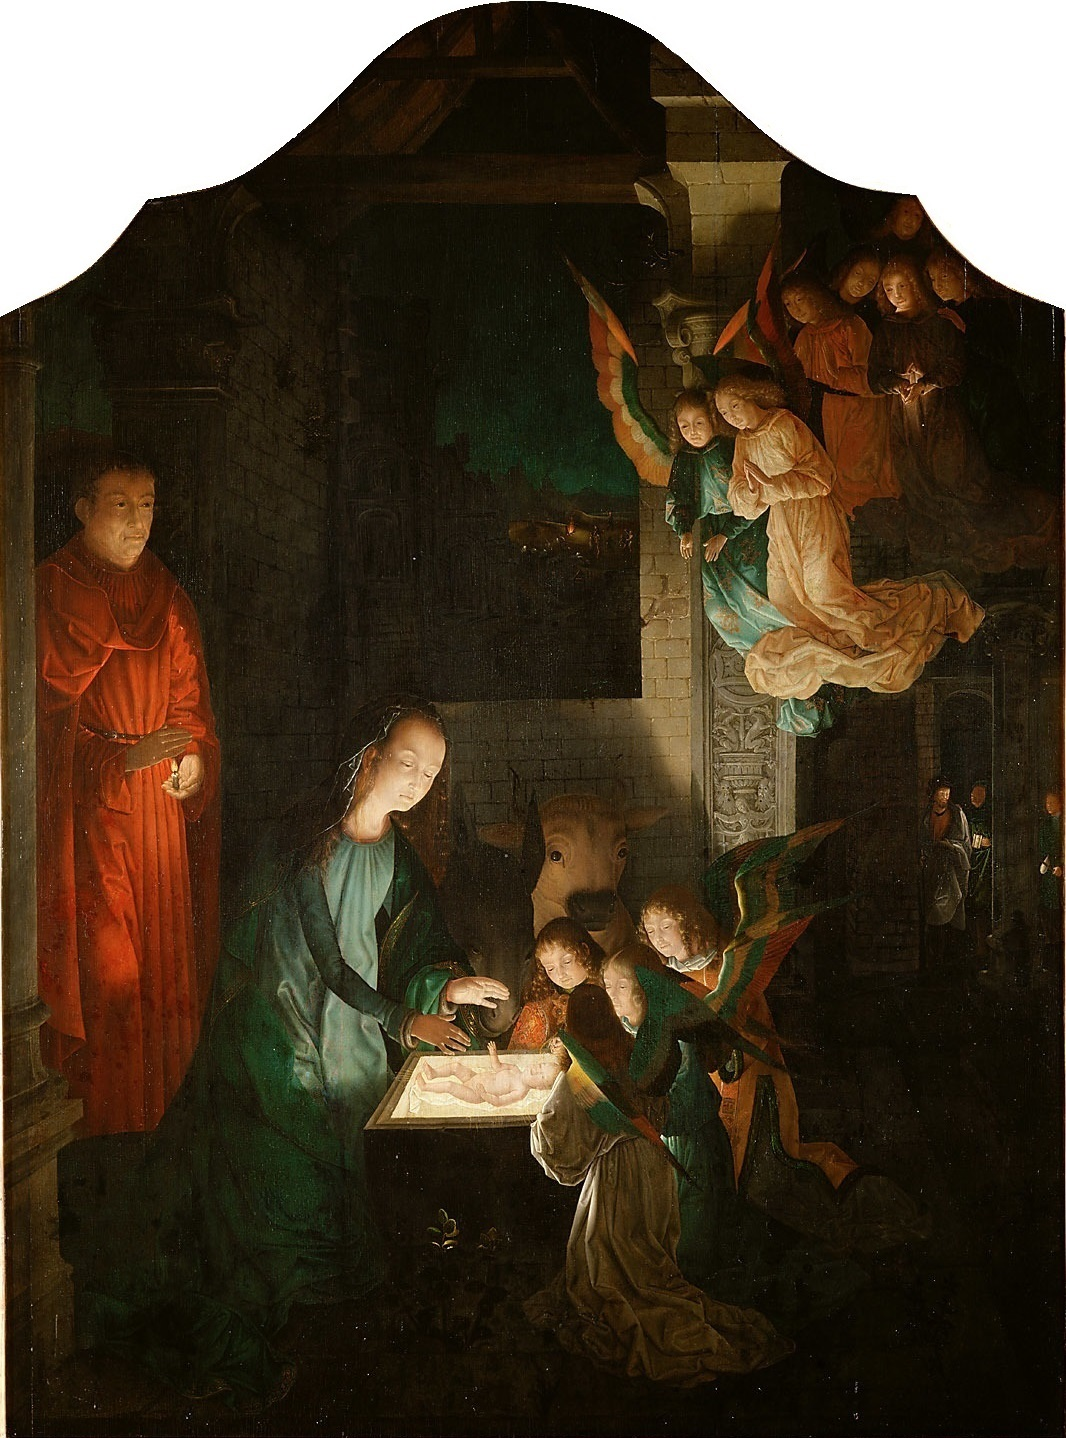 Famous Painting of the Nativity http://branemrys.blogspot.com/2011/12/nativity-in-paintings-i.html